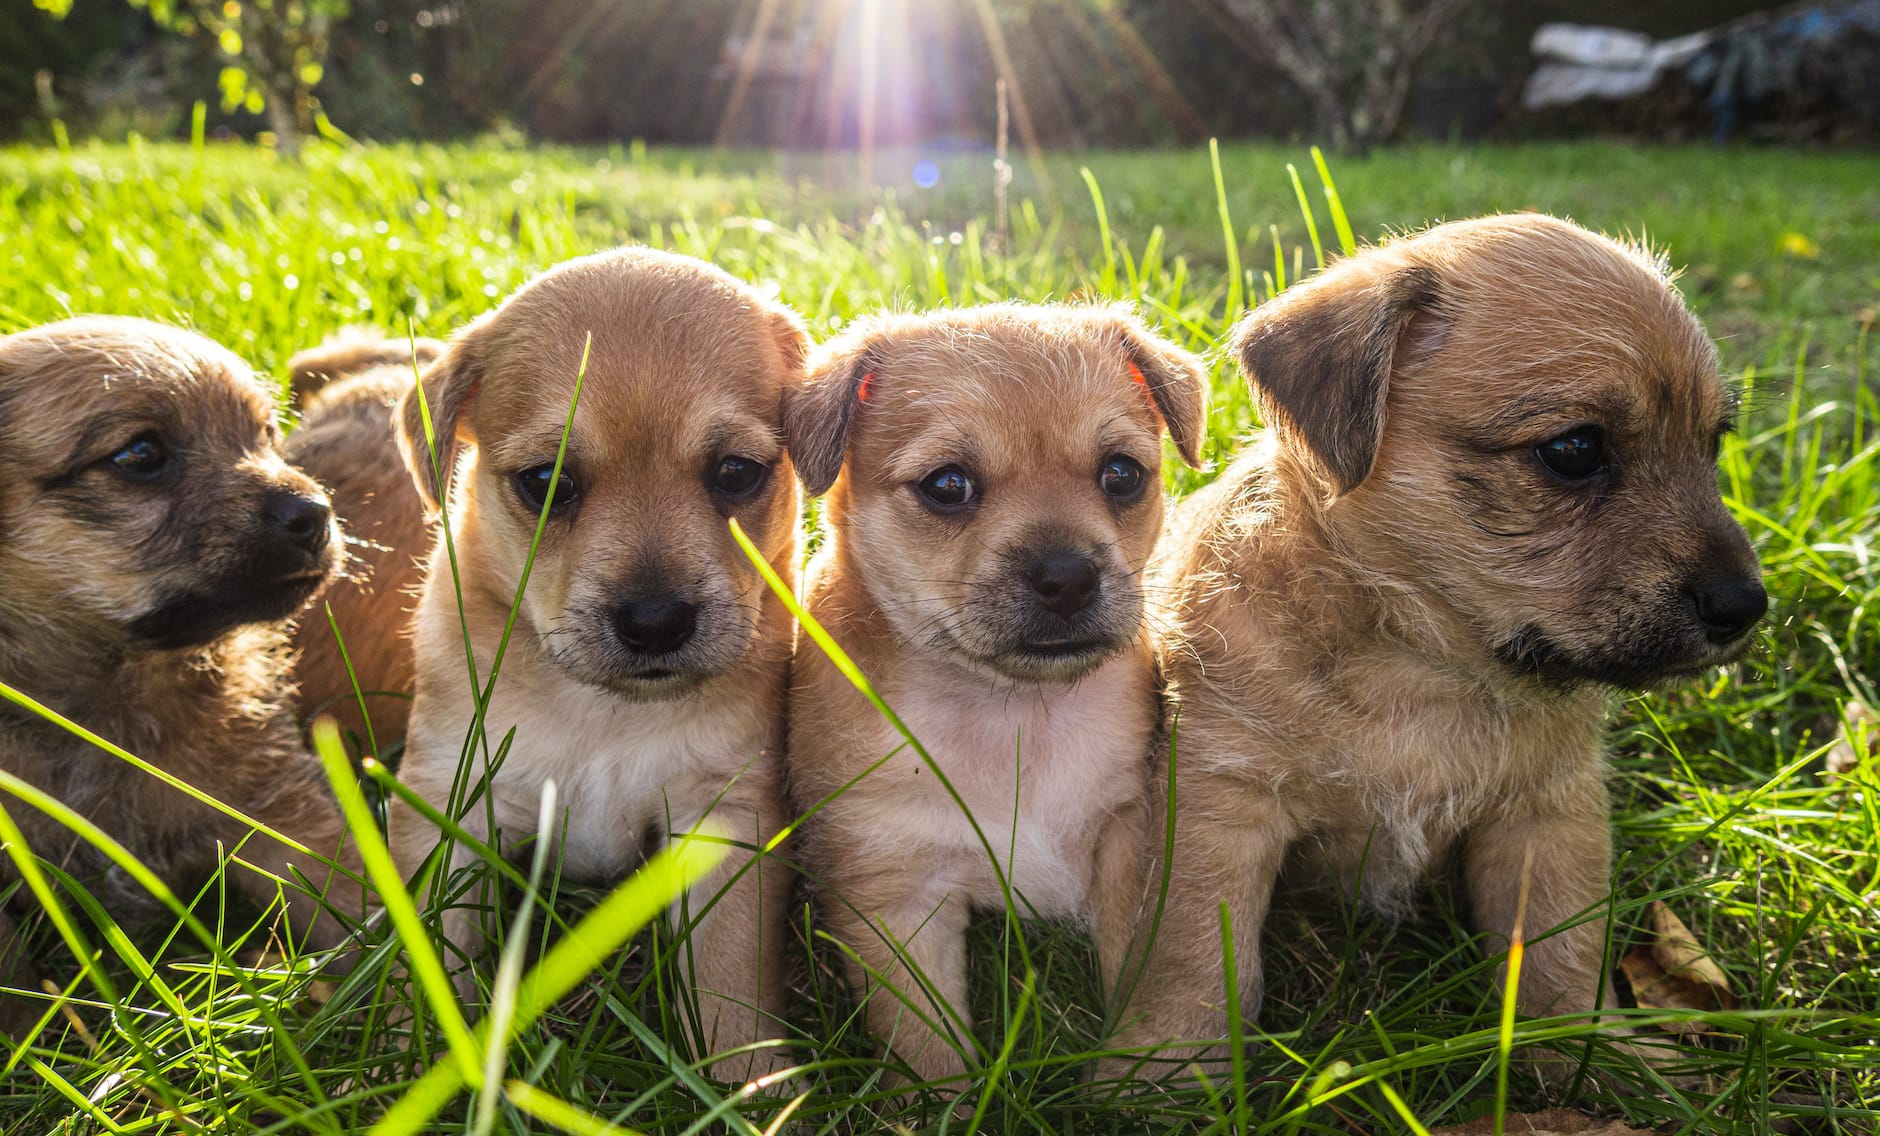 group of puppies on the grass with sunlight overhead